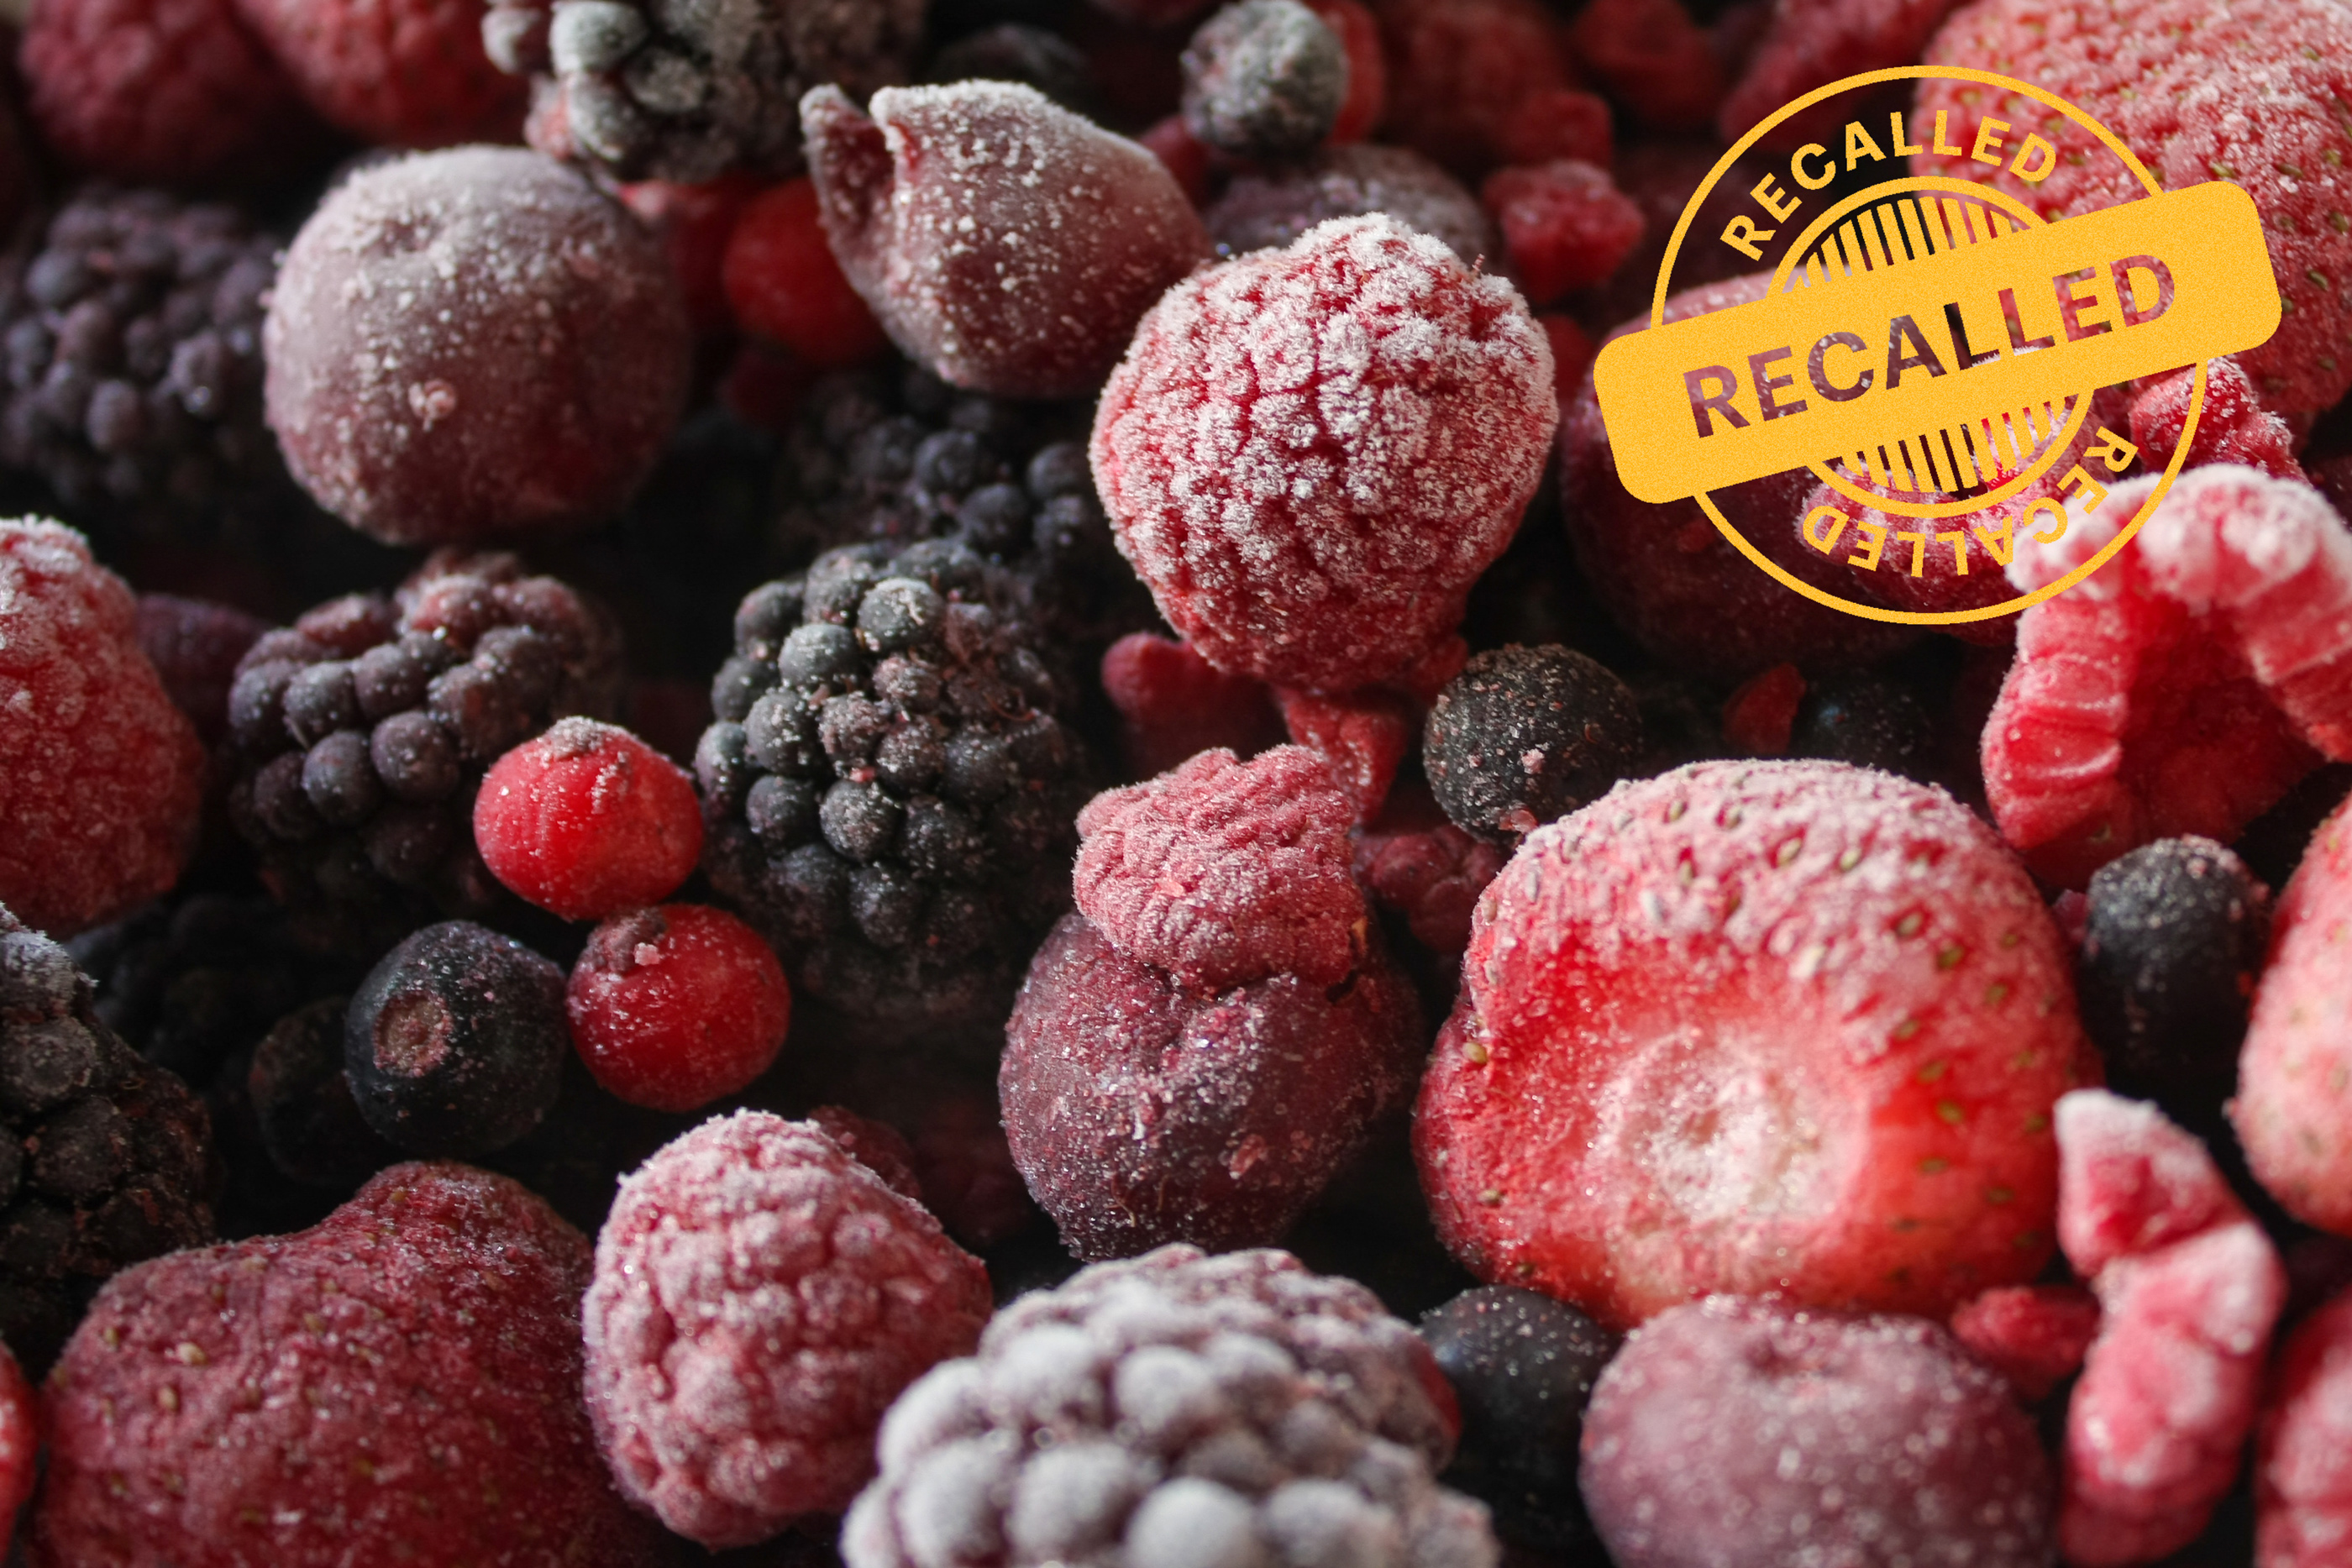 frozen berries with recall stam on them